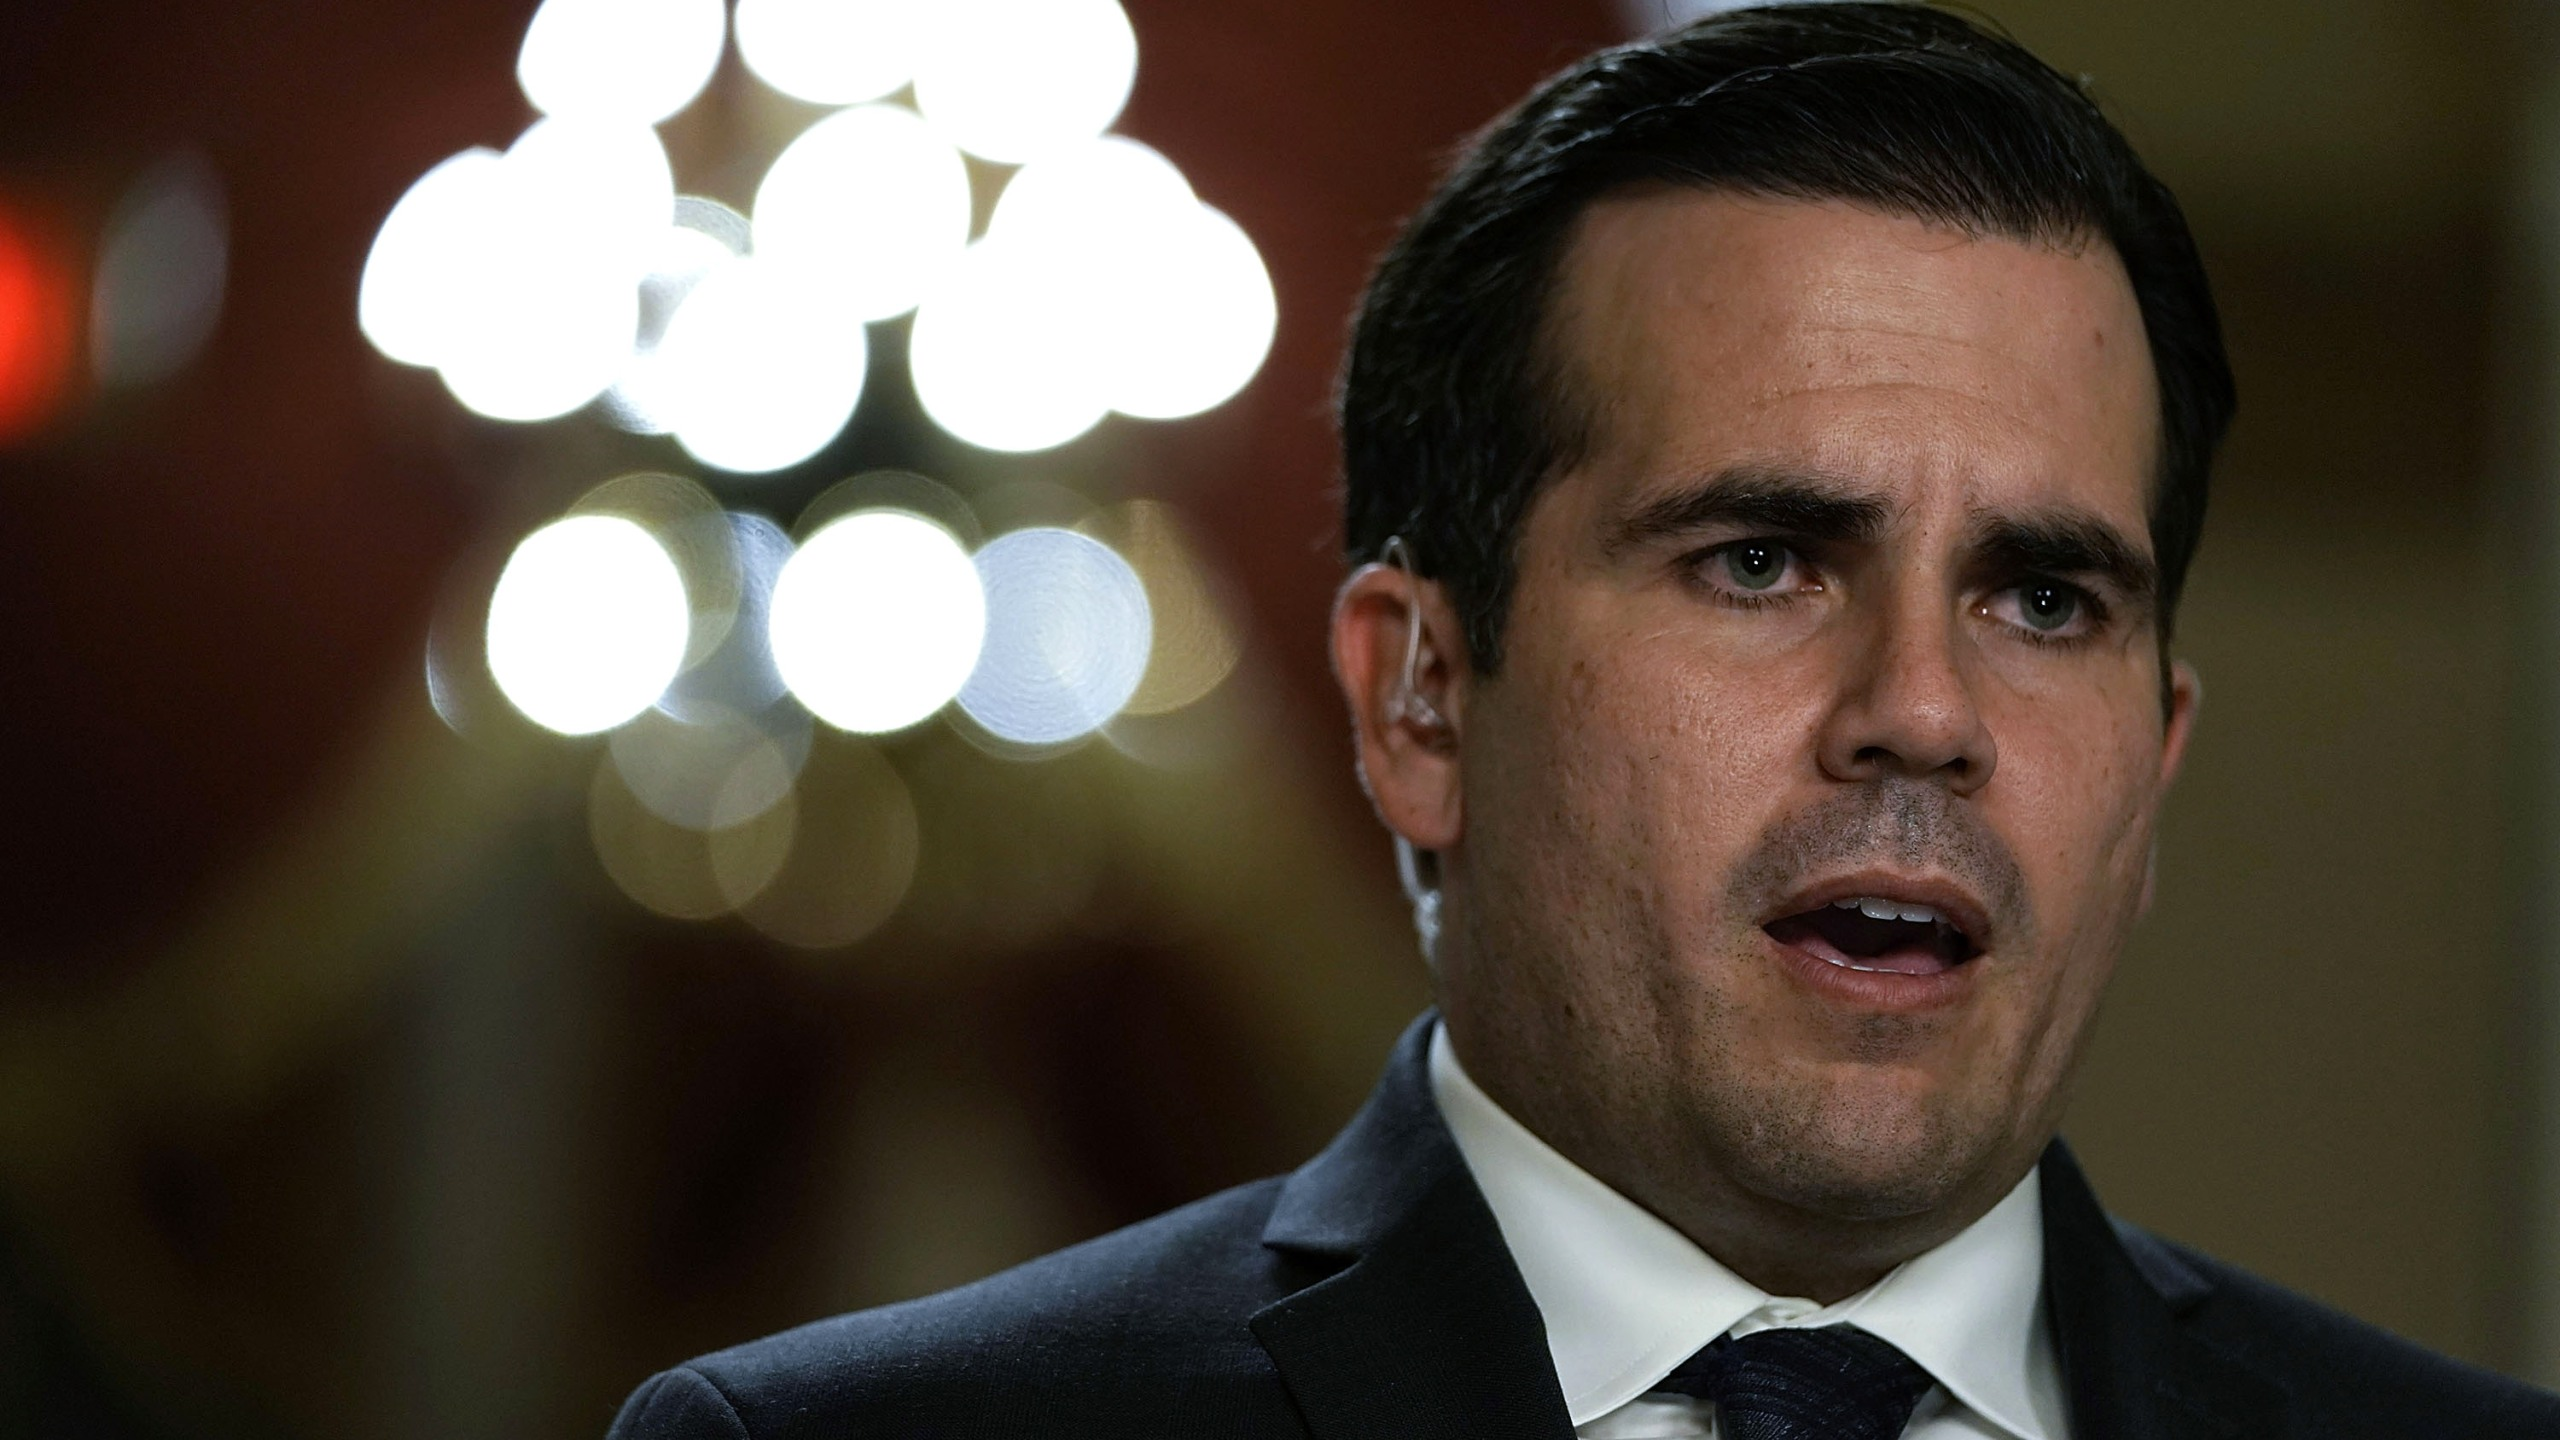 Puerto Rican Gov. Ricardo Rossello is interviewed by a TV channel after a House vote at the Capitol Dec. 21, 2017, in Washington, D.C. (Credit: Alex Wong/Getty Images)